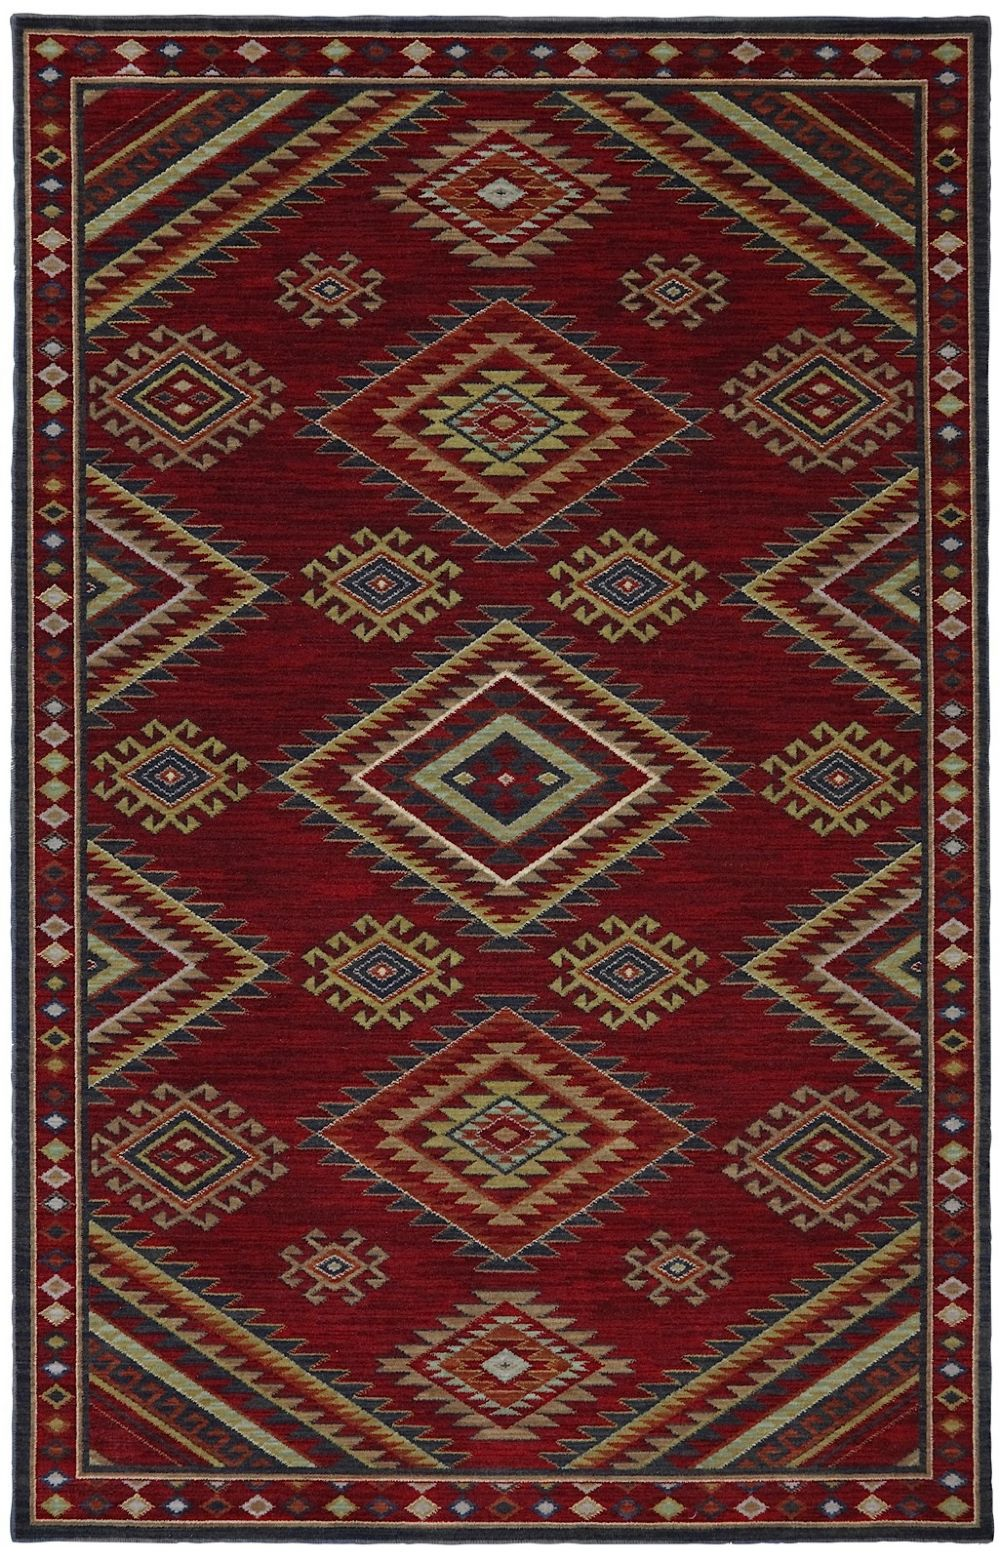 karastan woolrich transitional area rug collection